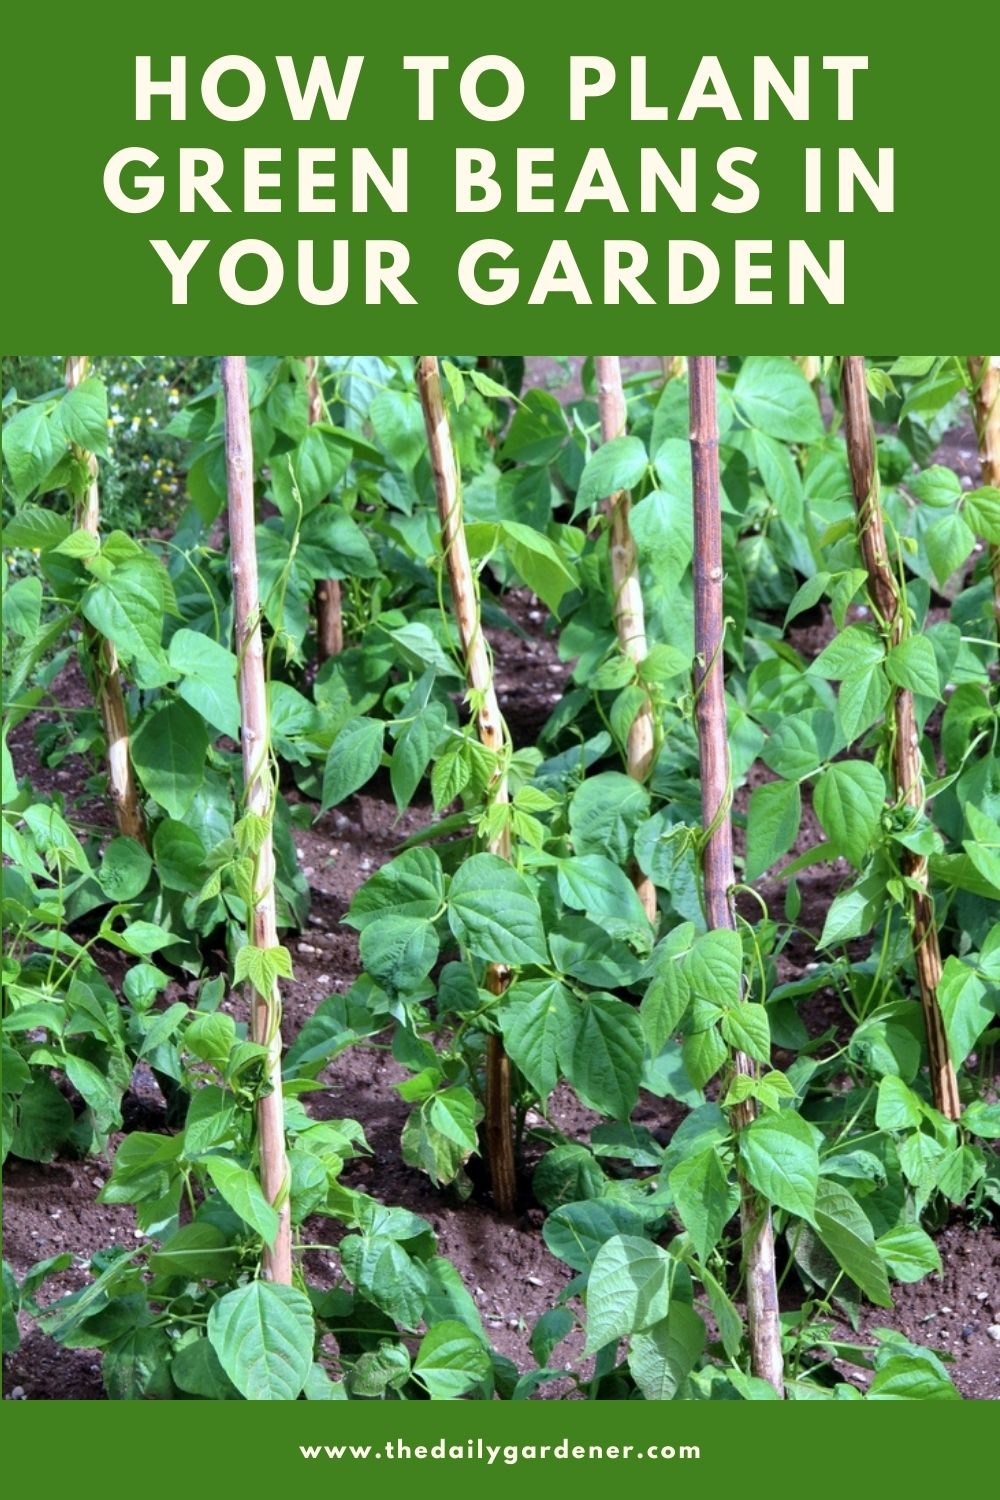 How to Plant Green Beans in Your Garden (Tricks to Care!) 1